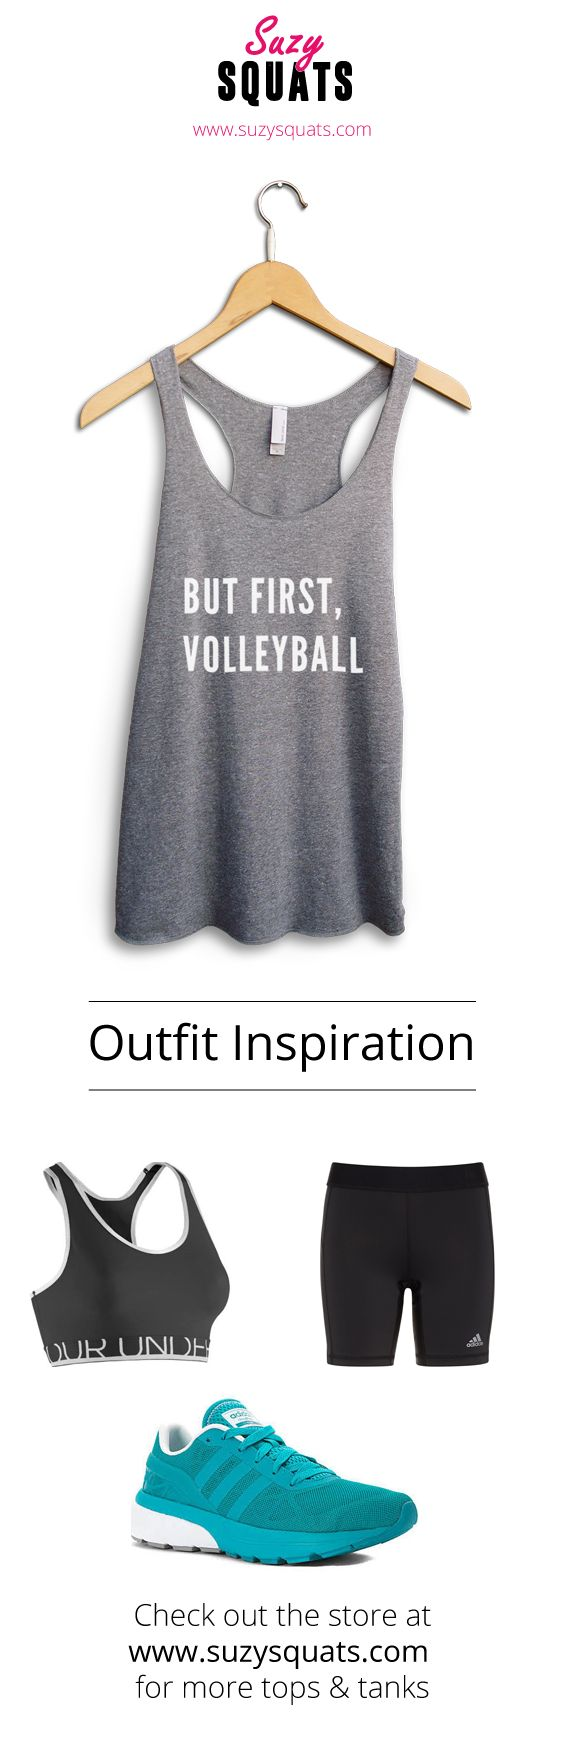 Suzy Squats funny volleyball tank top, perfect to wear during your next volleyball game or as a gift for a volleyball loving friend! You can find more funny sports clothing for the volleyball court at the Suzy Squats store by clicking the link above. Volleyball Fan Outfit | Beach Volleyball | SuzyOutfitInspiration